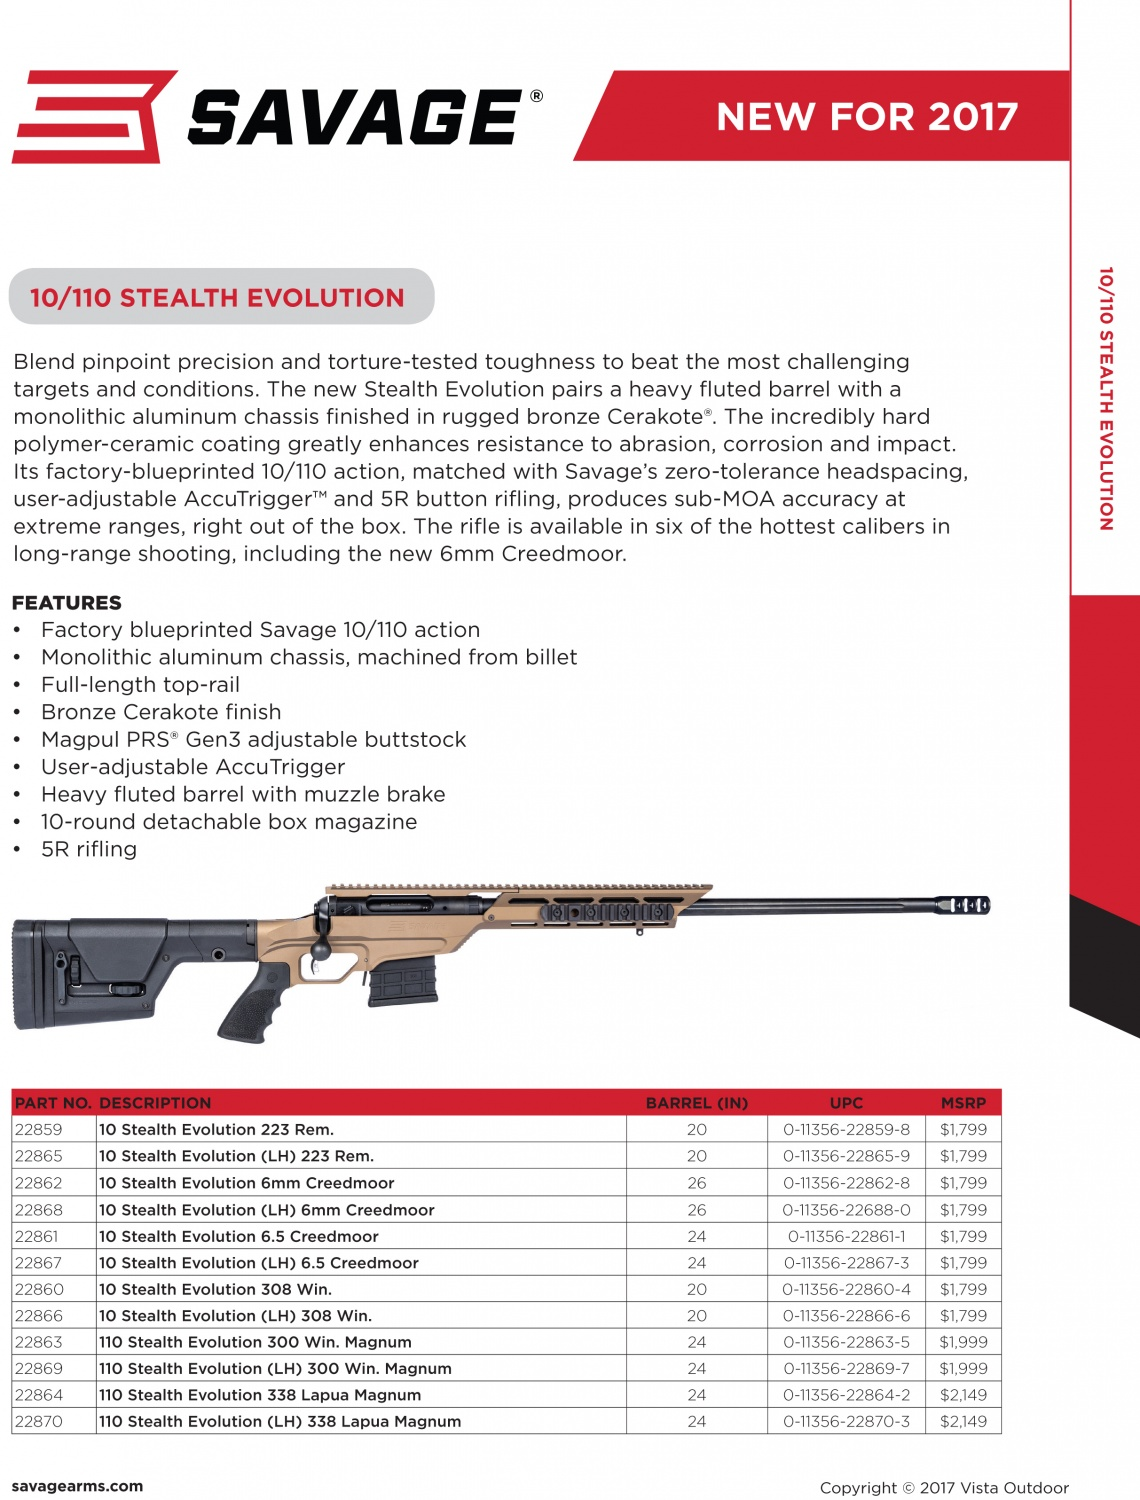 savage model 110 parts diagram frontal rainfall arms upgrades the 10 once more to become stealth evolution